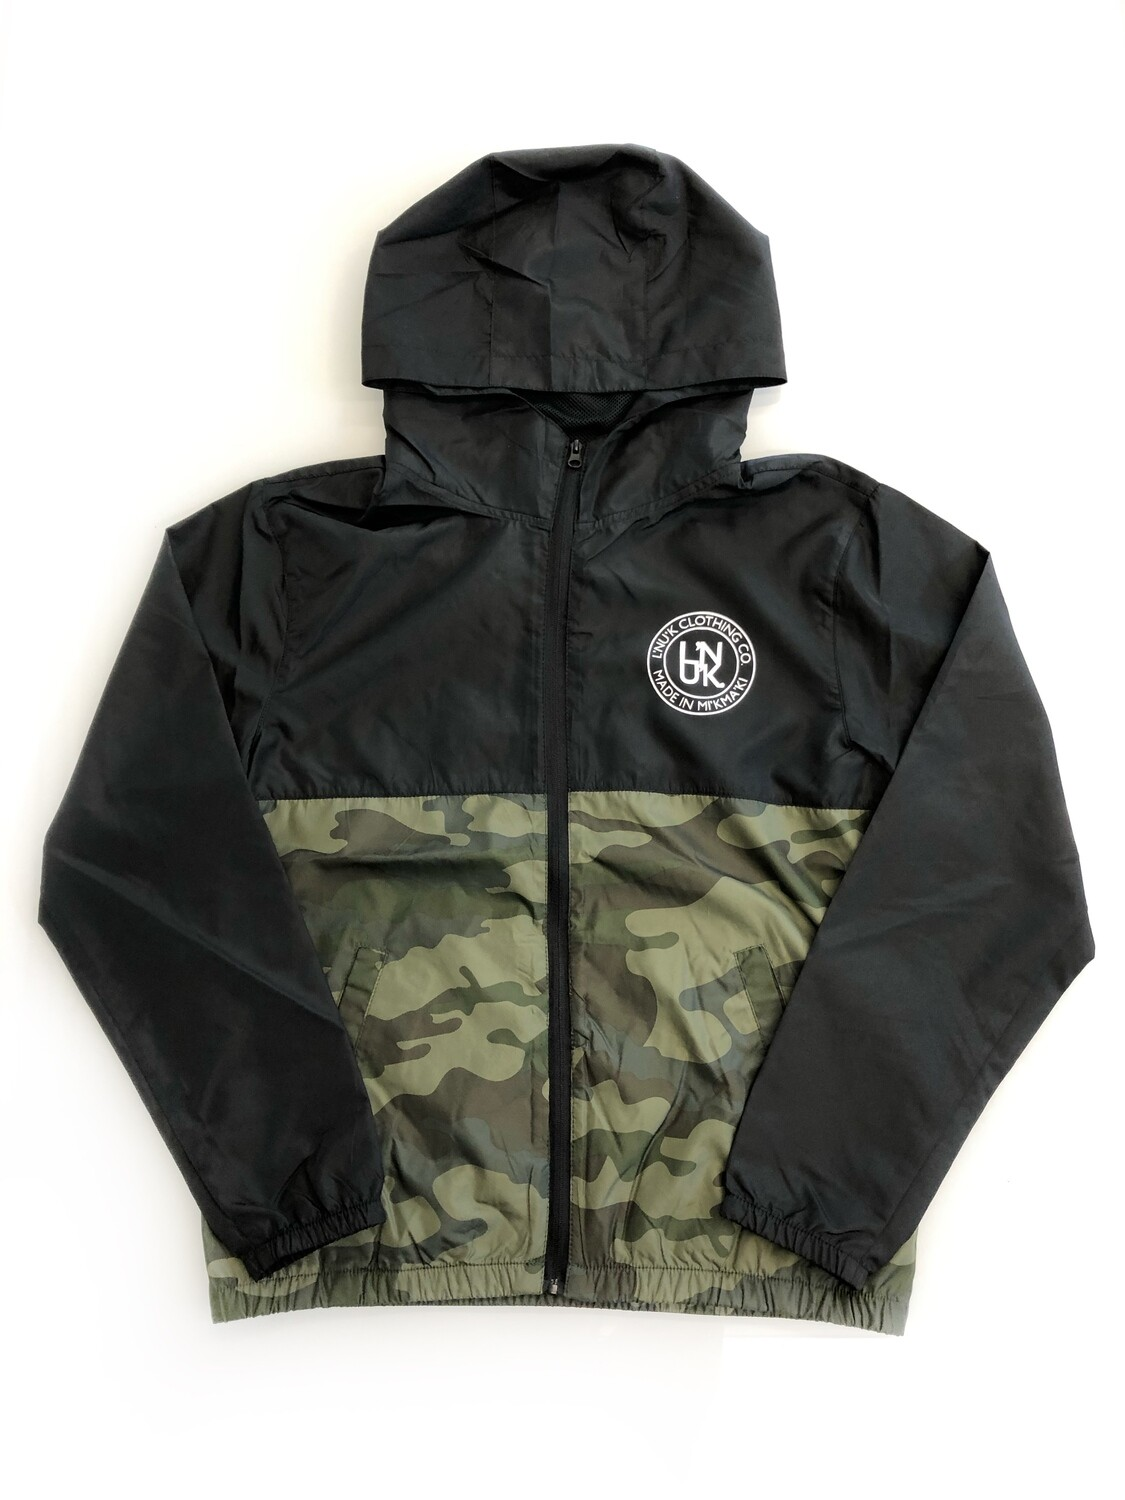 L'NU'K Youth Windbreaker